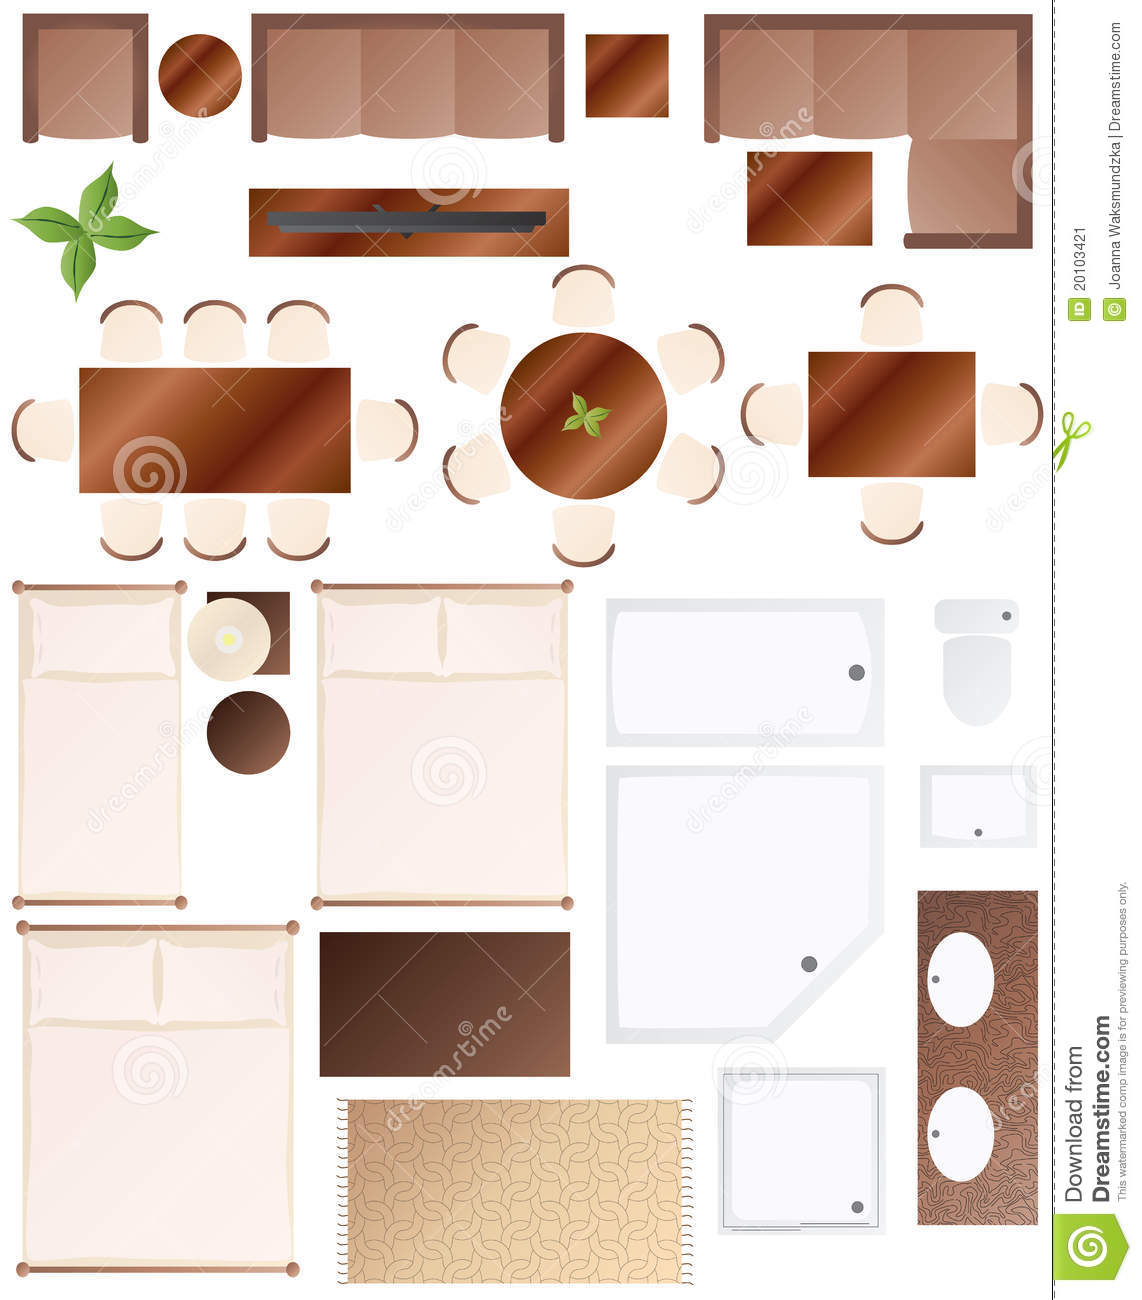 Bathroom House Plans Floor Plan Furniture Collection Stock Vector Image 20103421